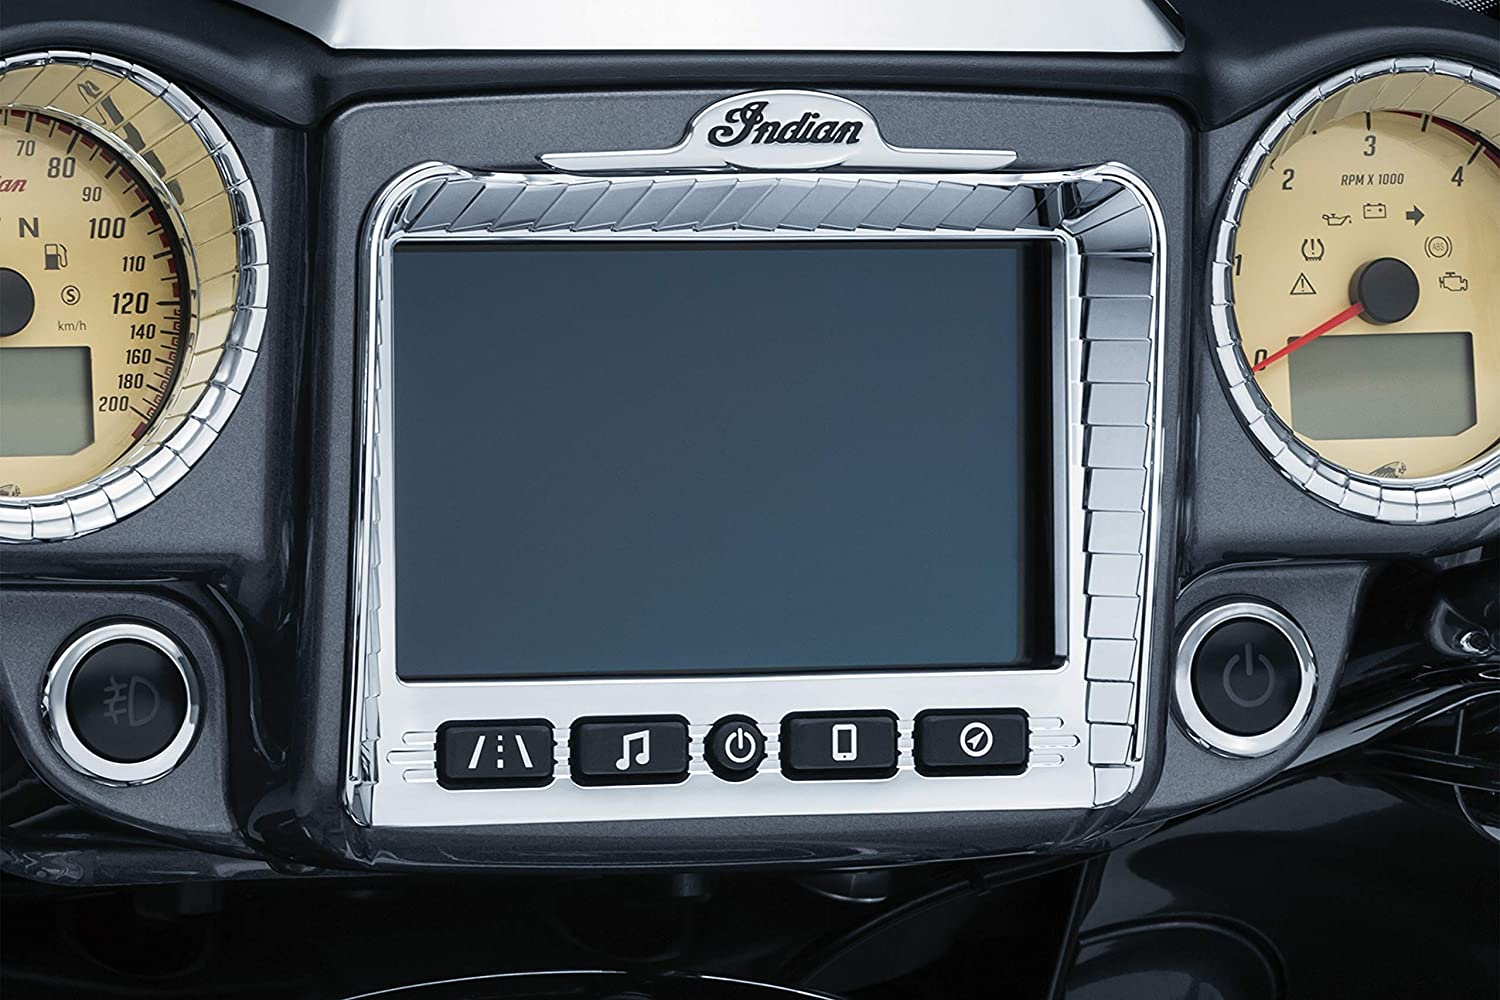 Aztec Stereo Accent for 2017-2019 Indian Chieftain /& Roadmaster Motorcycles Kuryakyn 5198 Motorcycle Accessory Satin Black